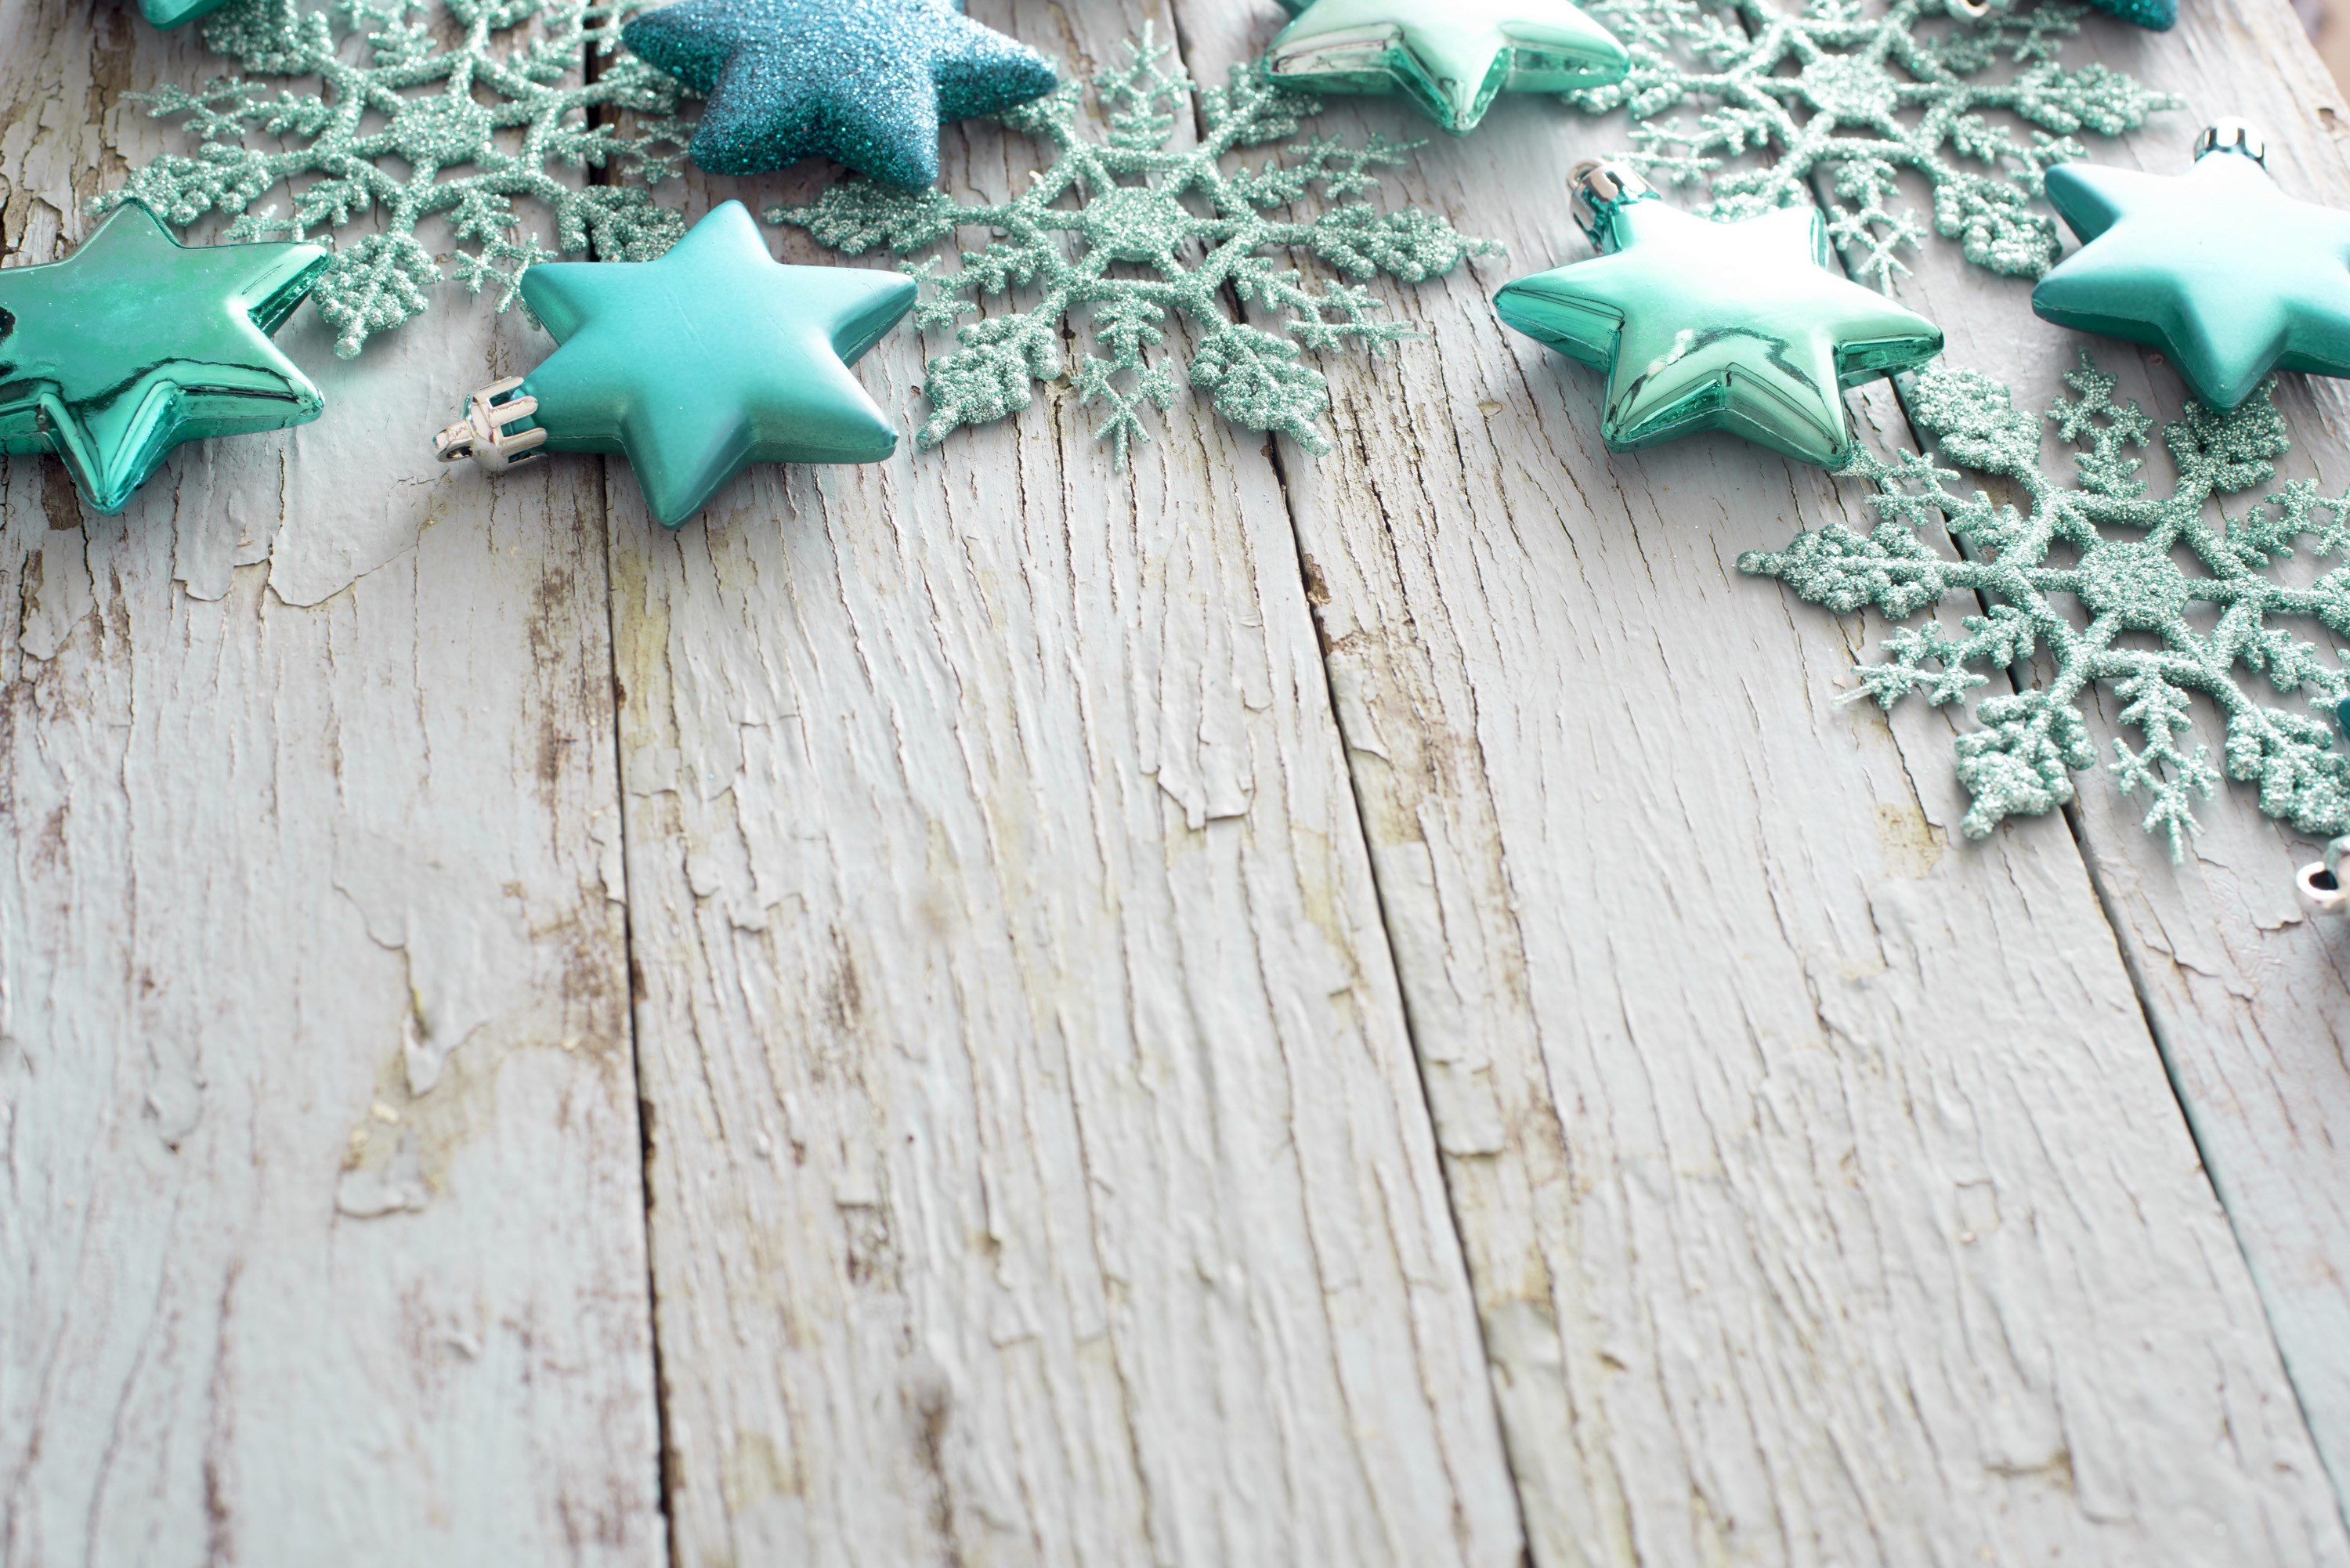 Rustic green Christmas border of delicate snowflake and star ornaments on old weathered textured wood with copy space